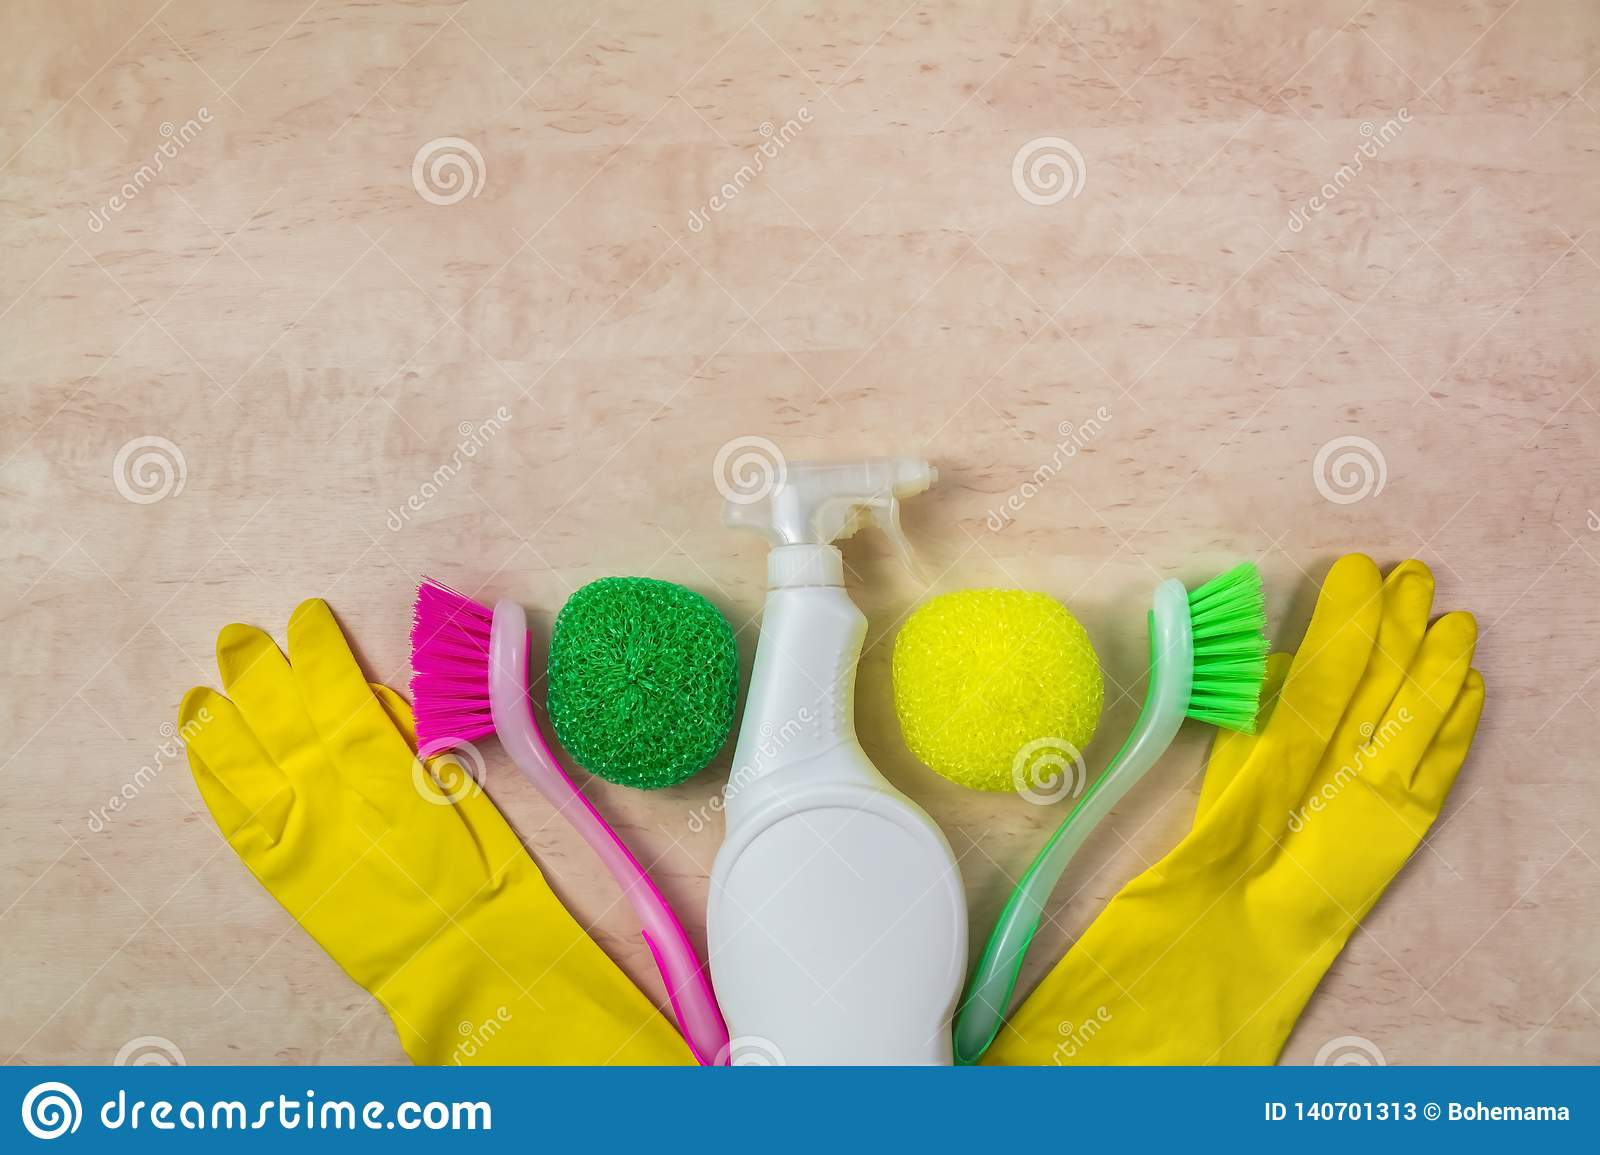 Cleaning supplies and products on wooden background, housework concept, top view with copy space